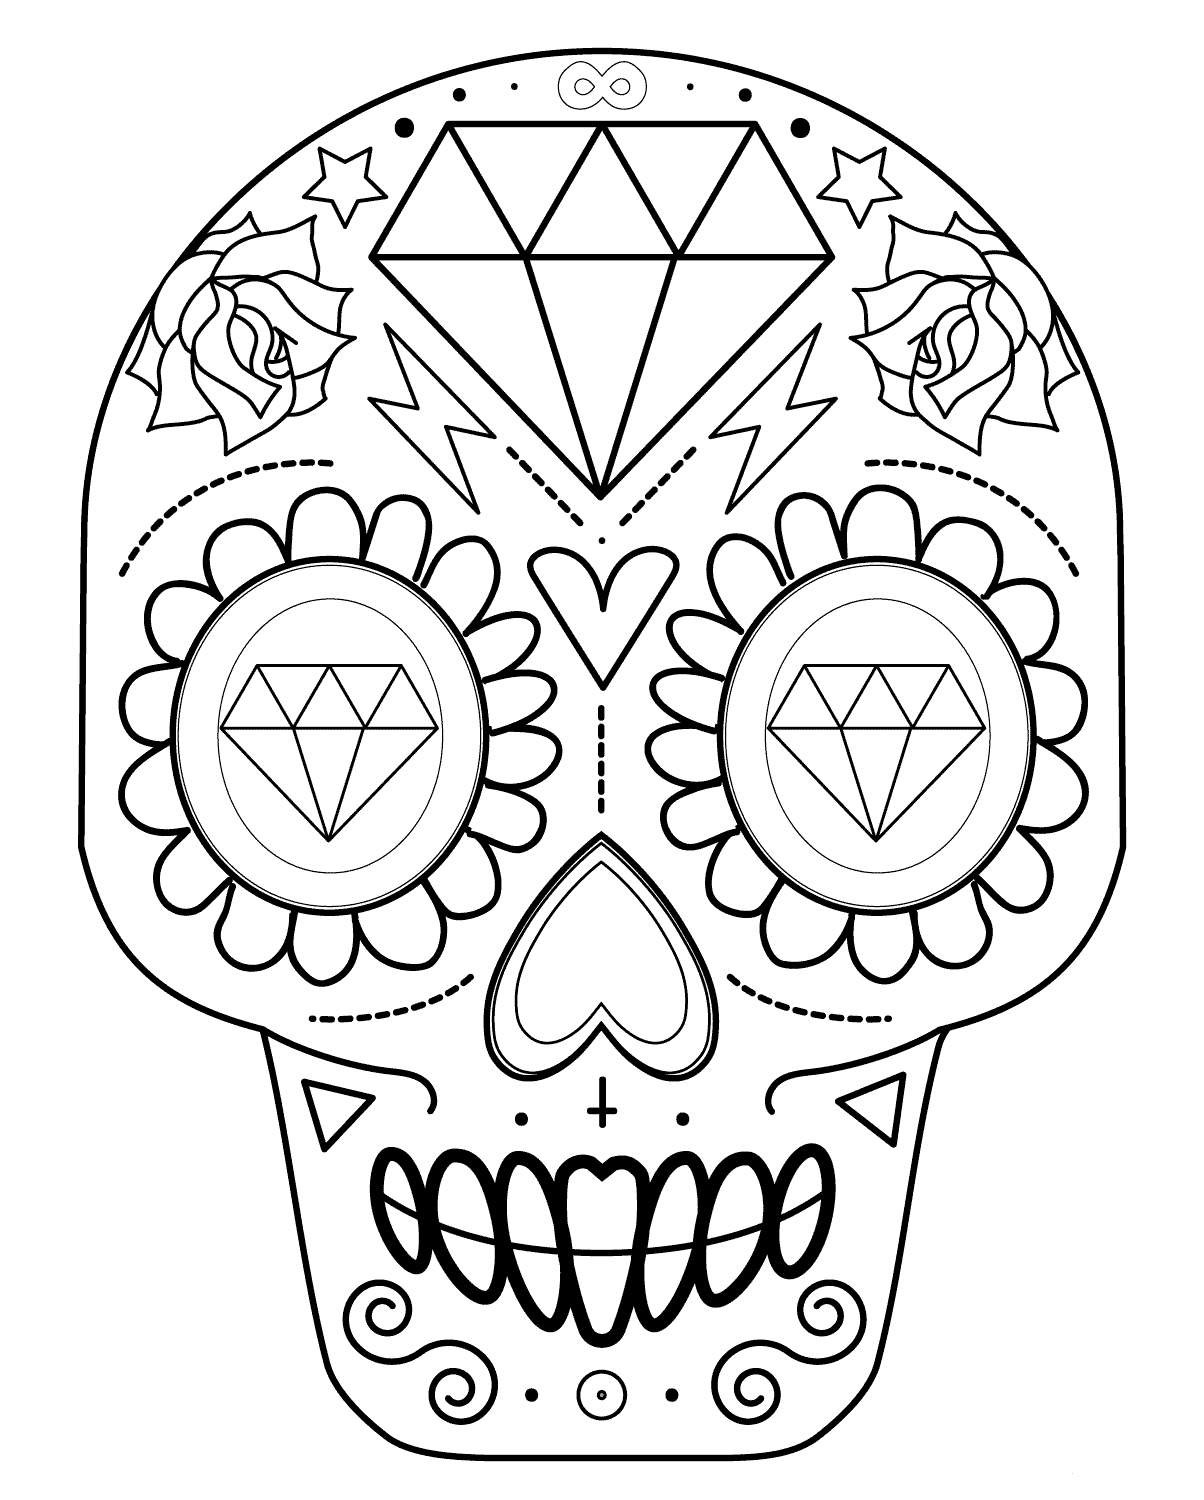 sugar skull coloring pages free 30 free printable sugar skull coloring pages skull coloring sugar free pages